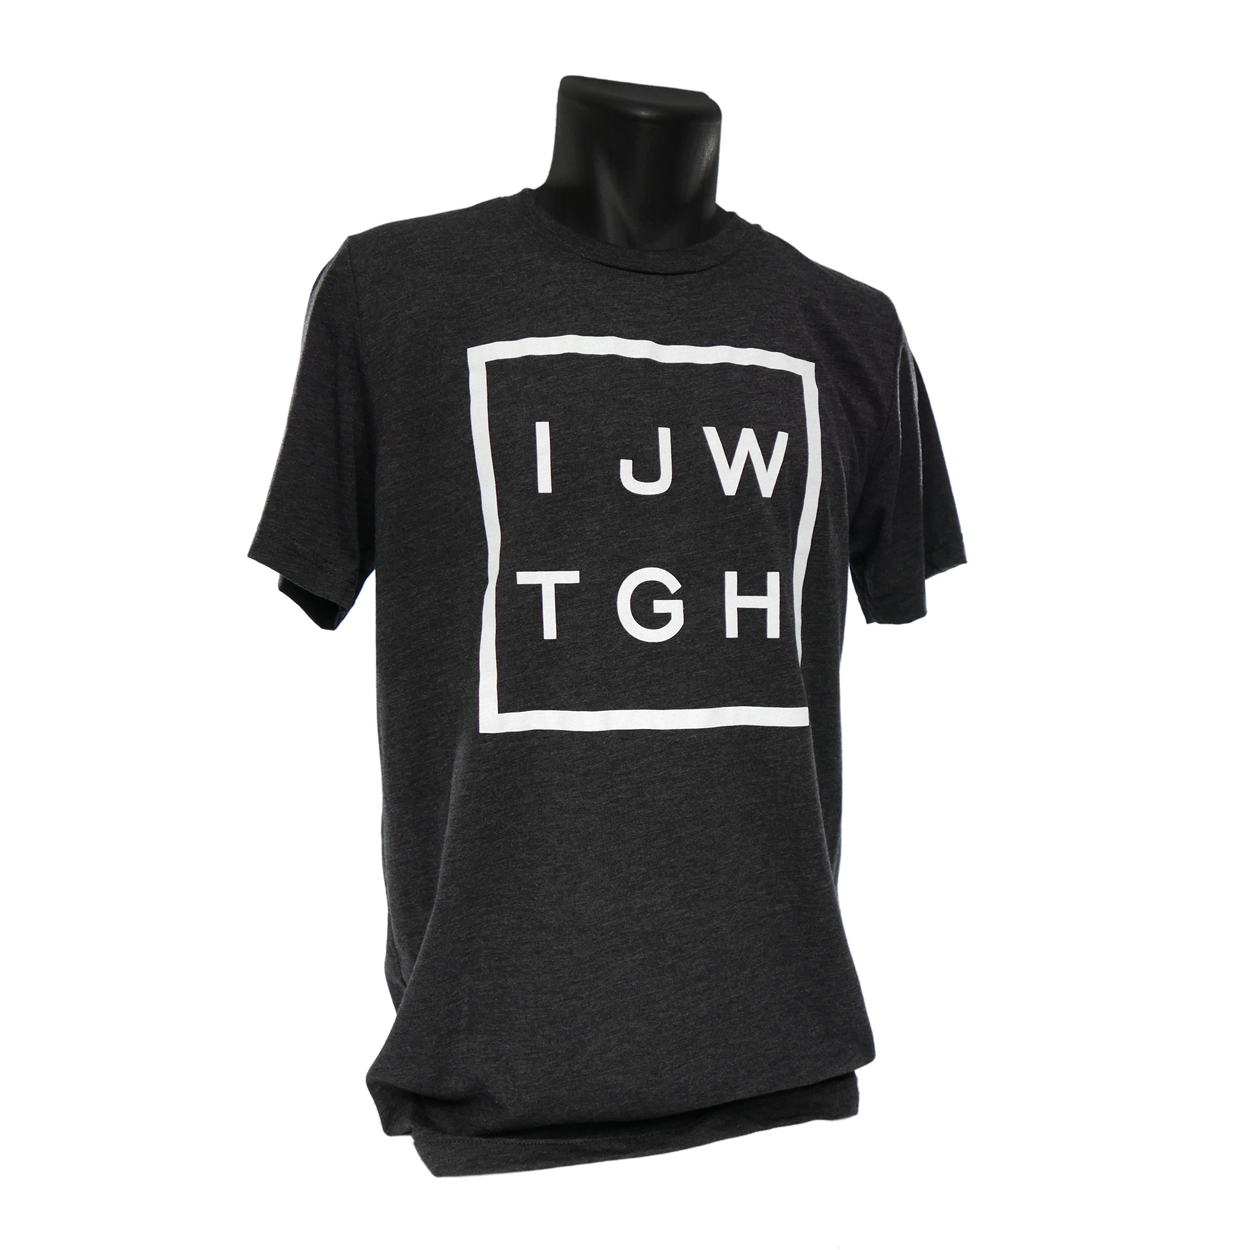 T-Shirt - I Just Want To Get High - Classic